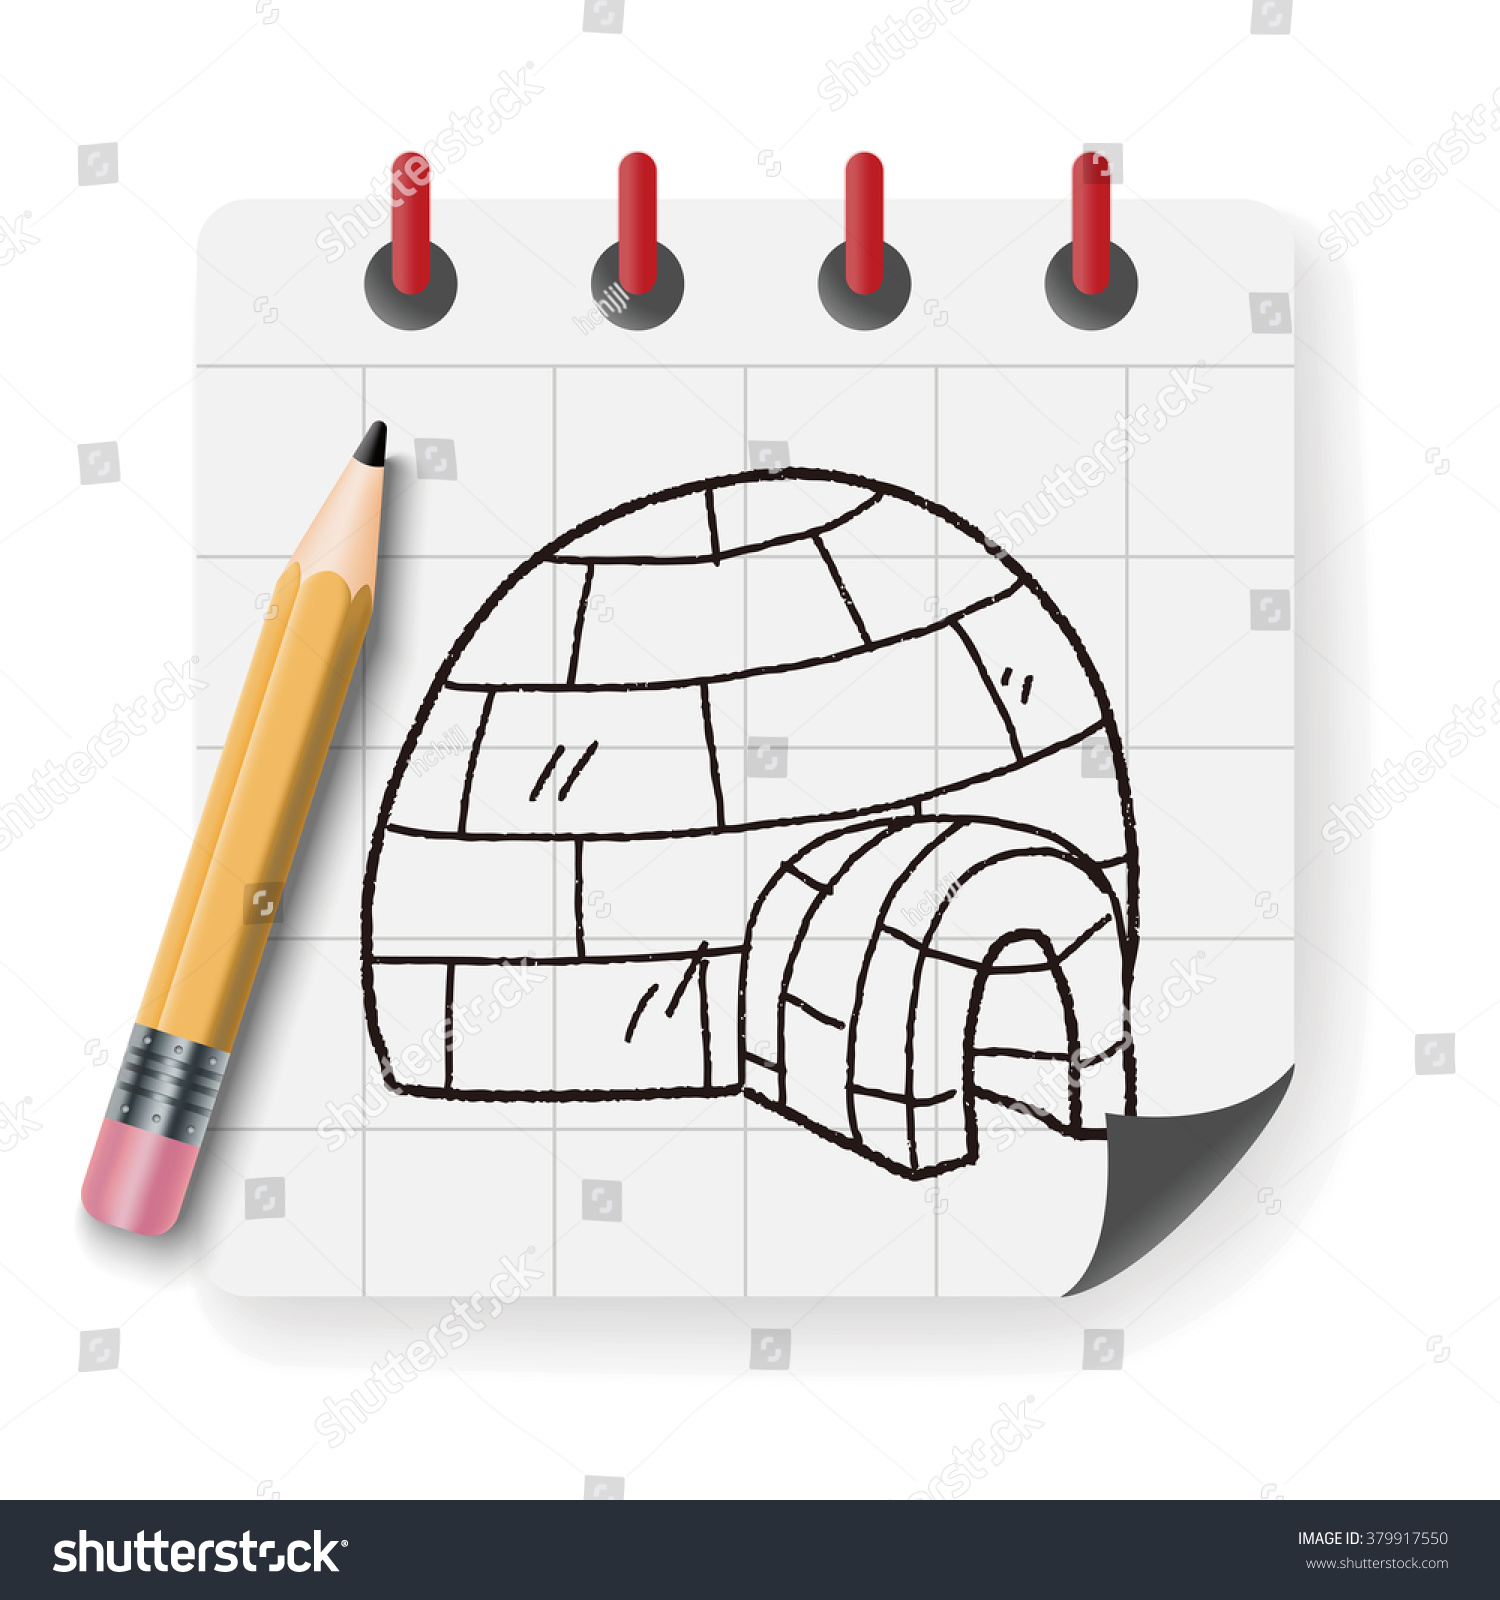 Igloo doodle stock illustration 379917550 shutterstock igloo doodle pooptronica